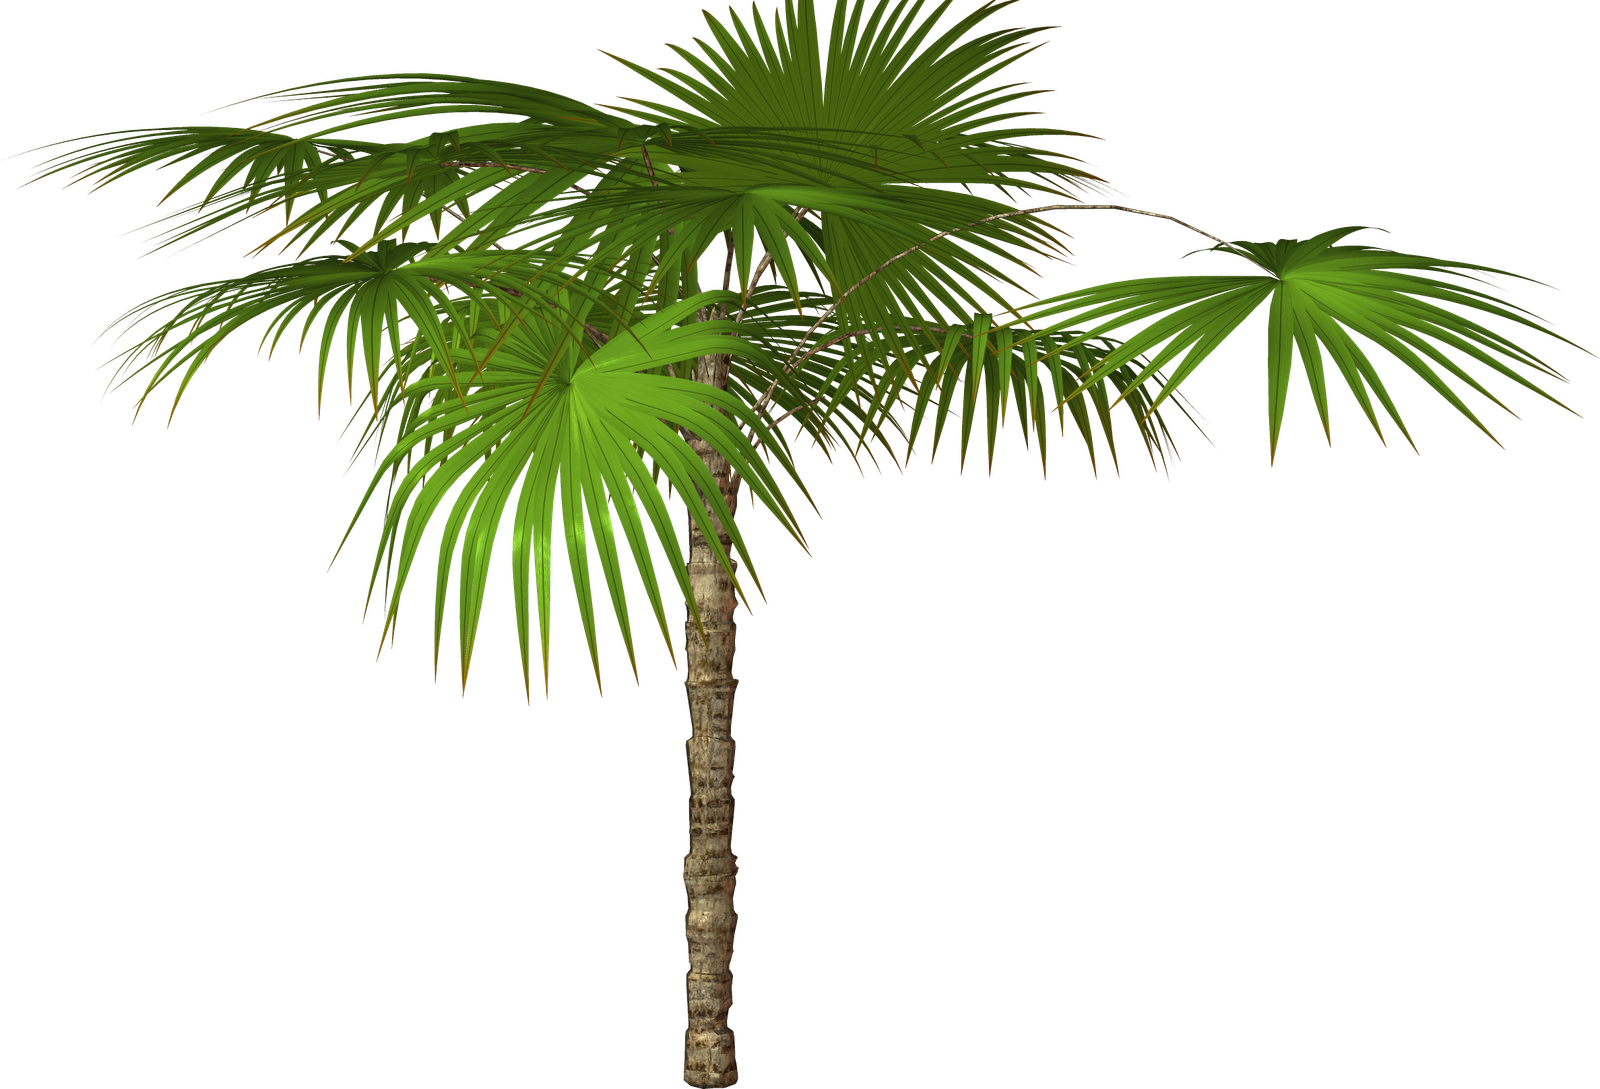 palm tree and free png flower clipart clip art palm tree public domain clip art palm trees on beach